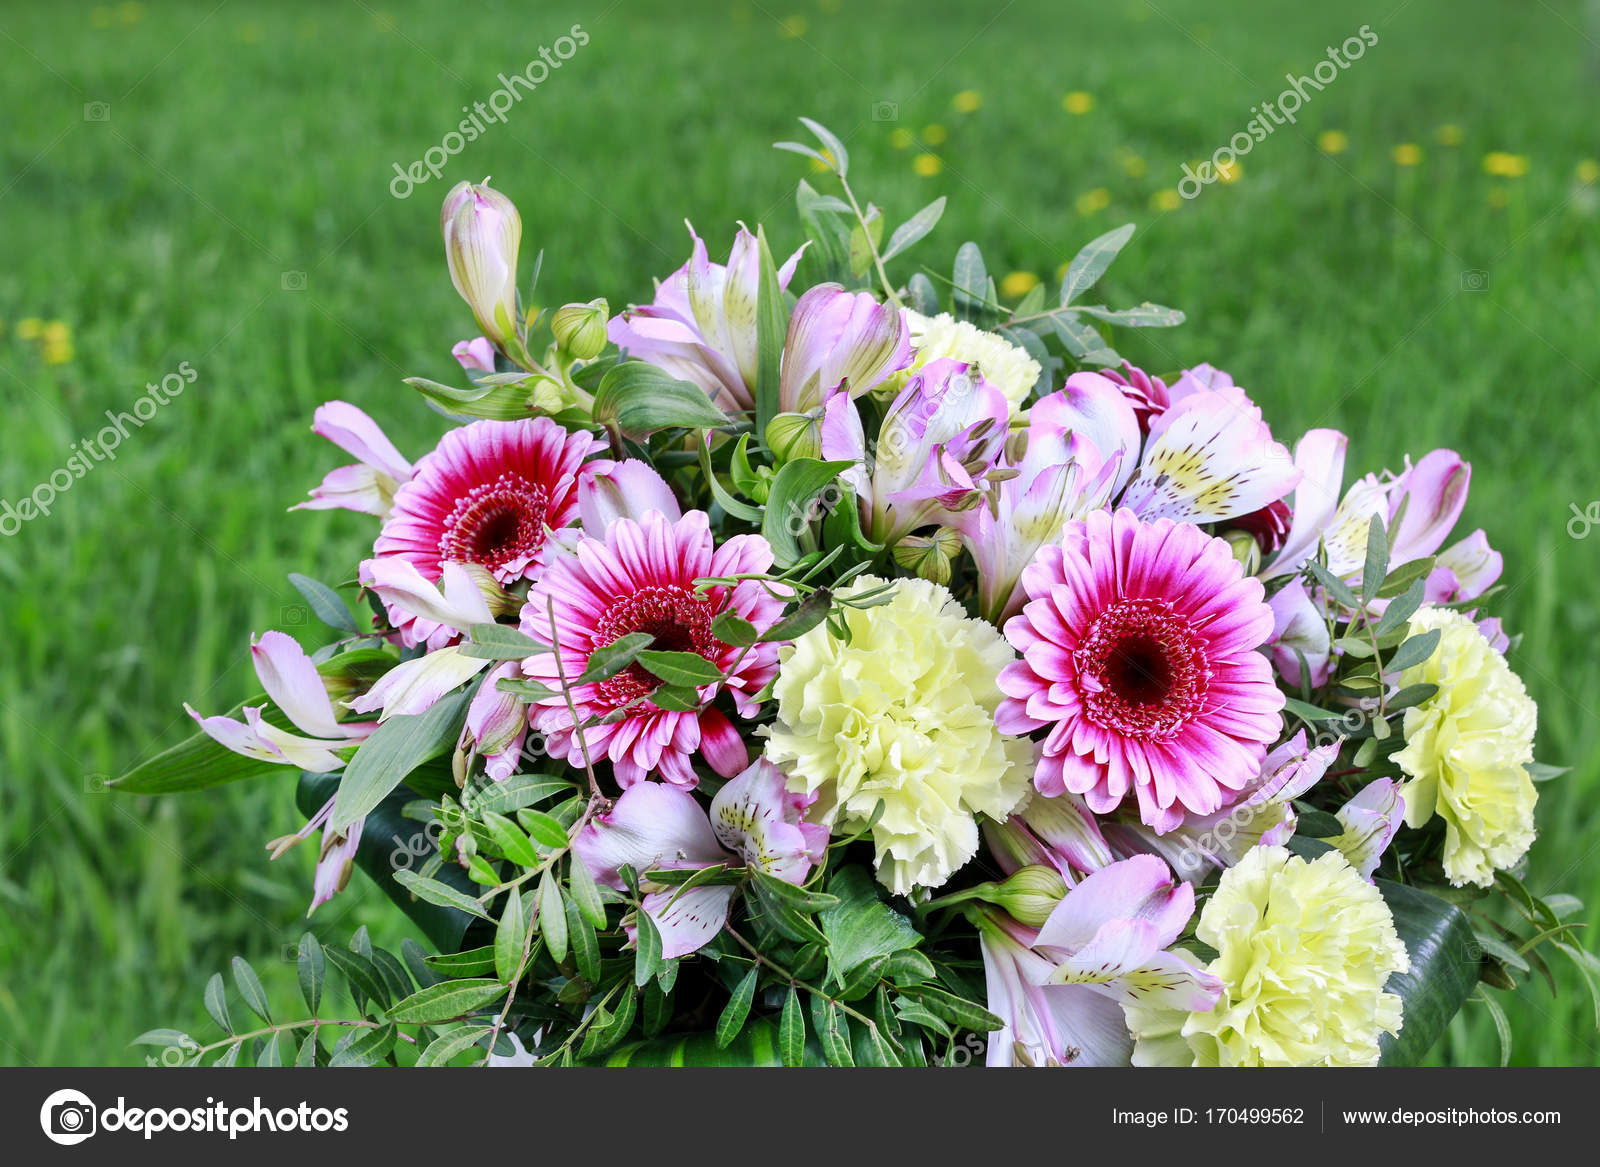 Big flower bouquet with carnations and gerberas stock photo big flower bouquet with carnations and gerberas grass in the background spring postcard photo by agneskantaruk izmirmasajfo